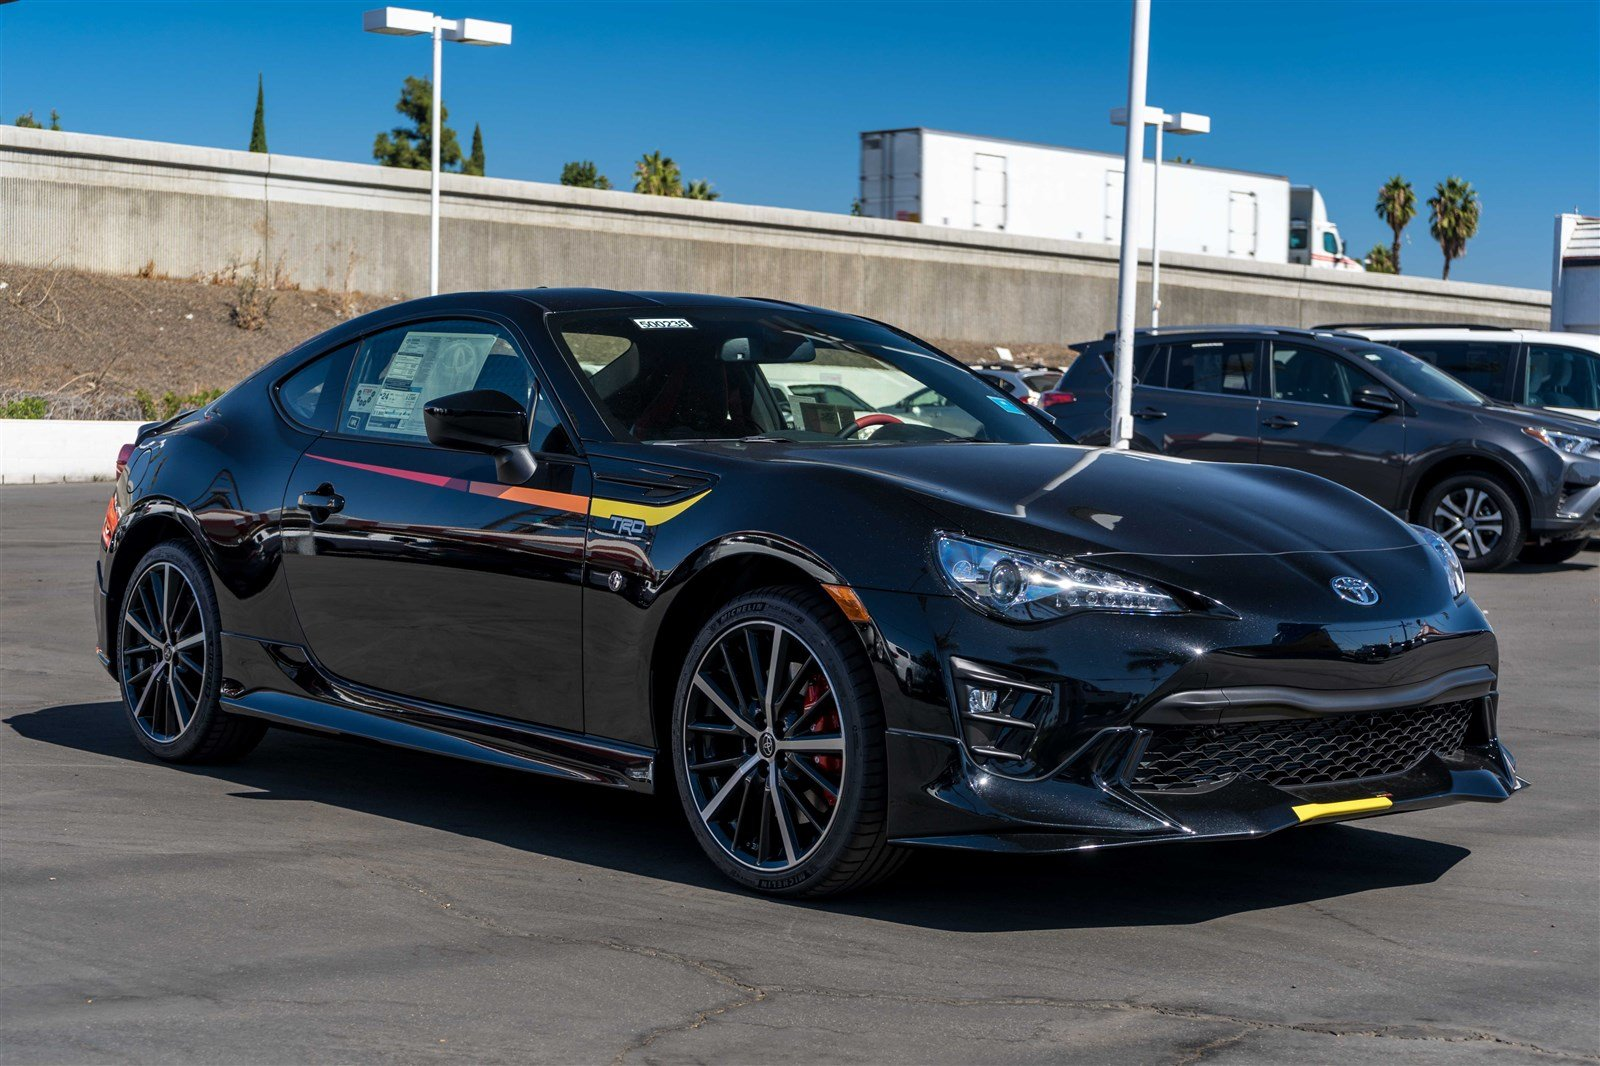 New 2019 Toyota 86 Trd Se 2dr Car In Riverside 00500238 Toyota Of